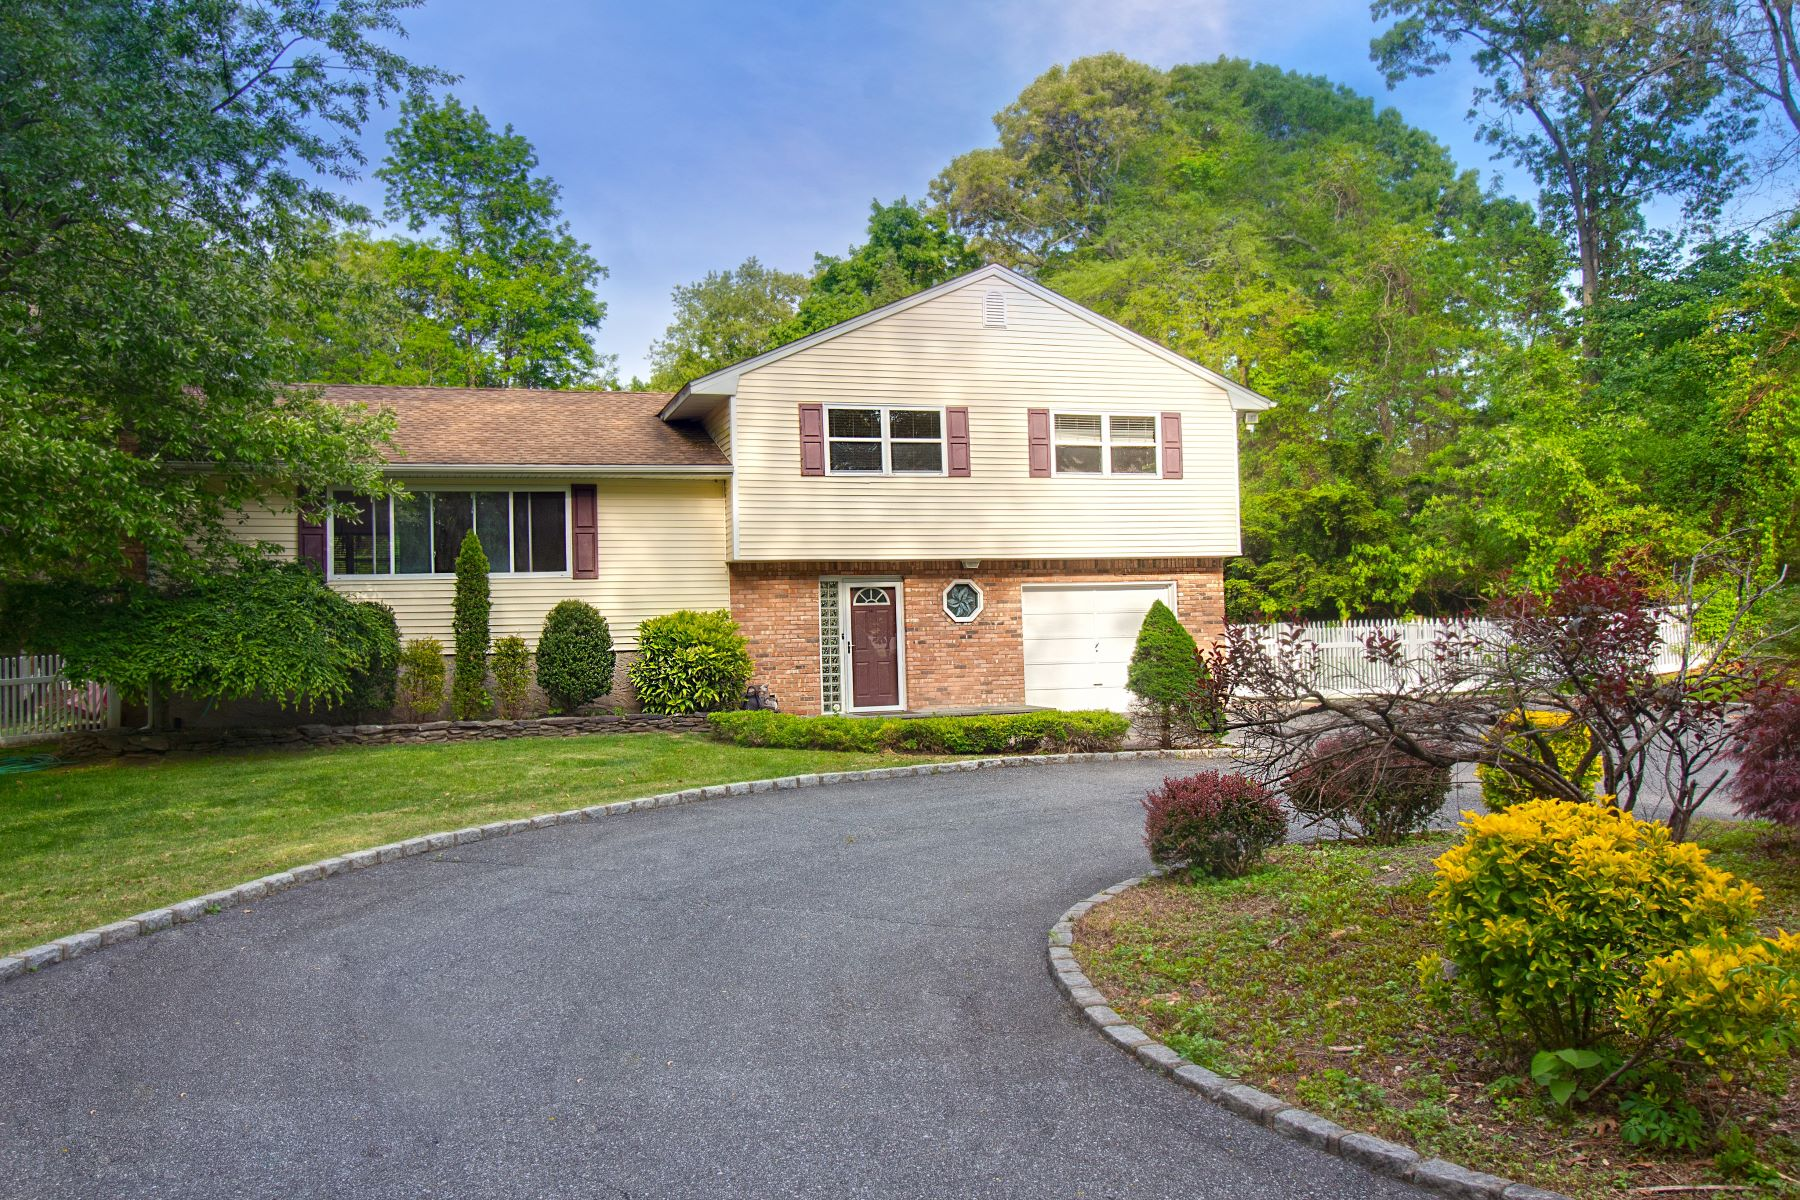 Single Family Homes for Active at Hauppauge 23 Torlen Ct Hauppauge, New York 11788 United States